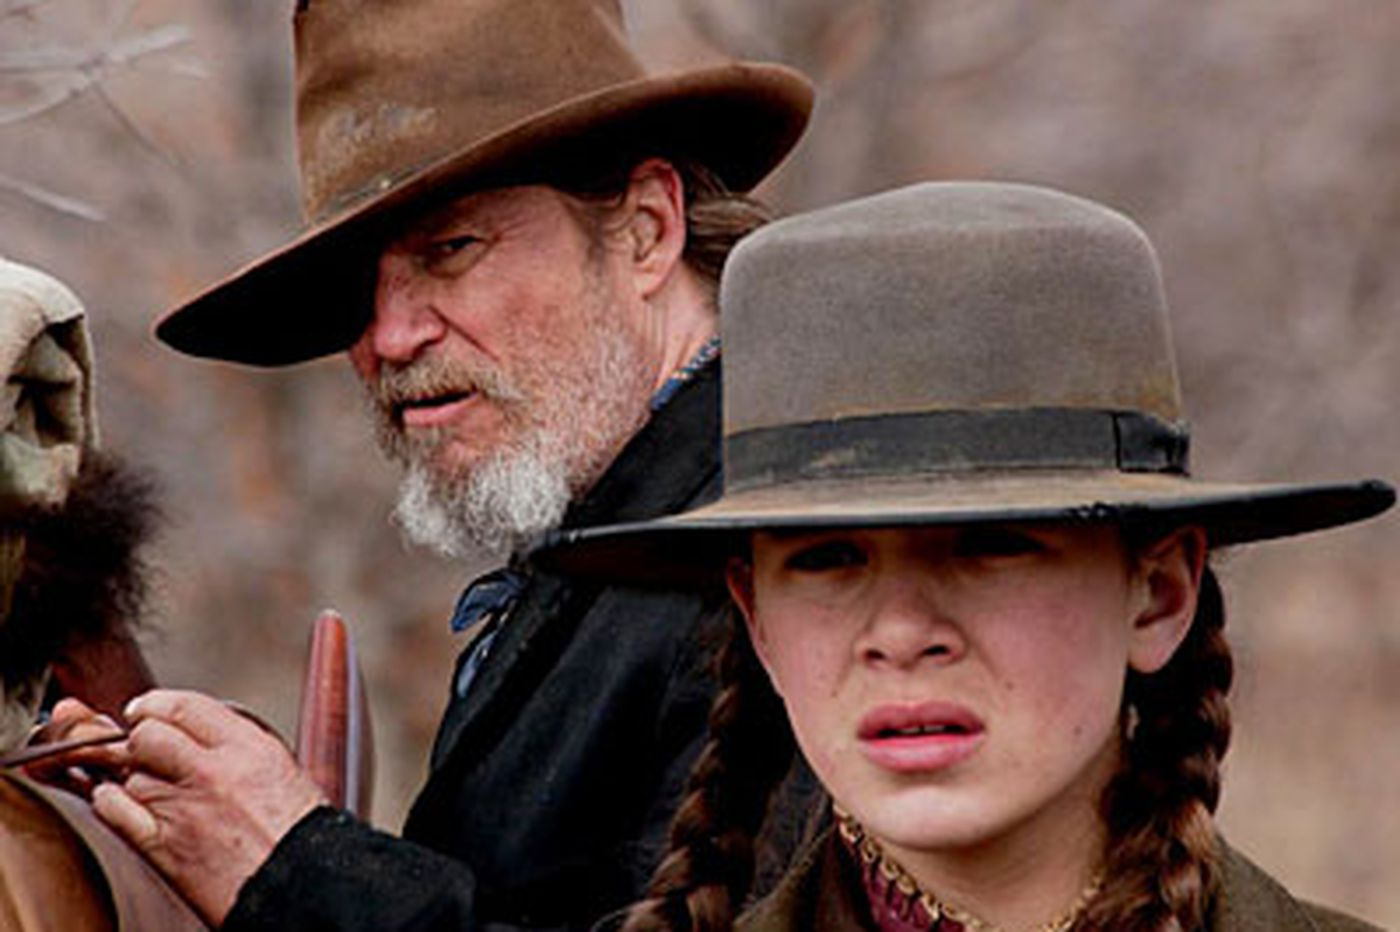 'True Grit,' the Coens' wry biblical western